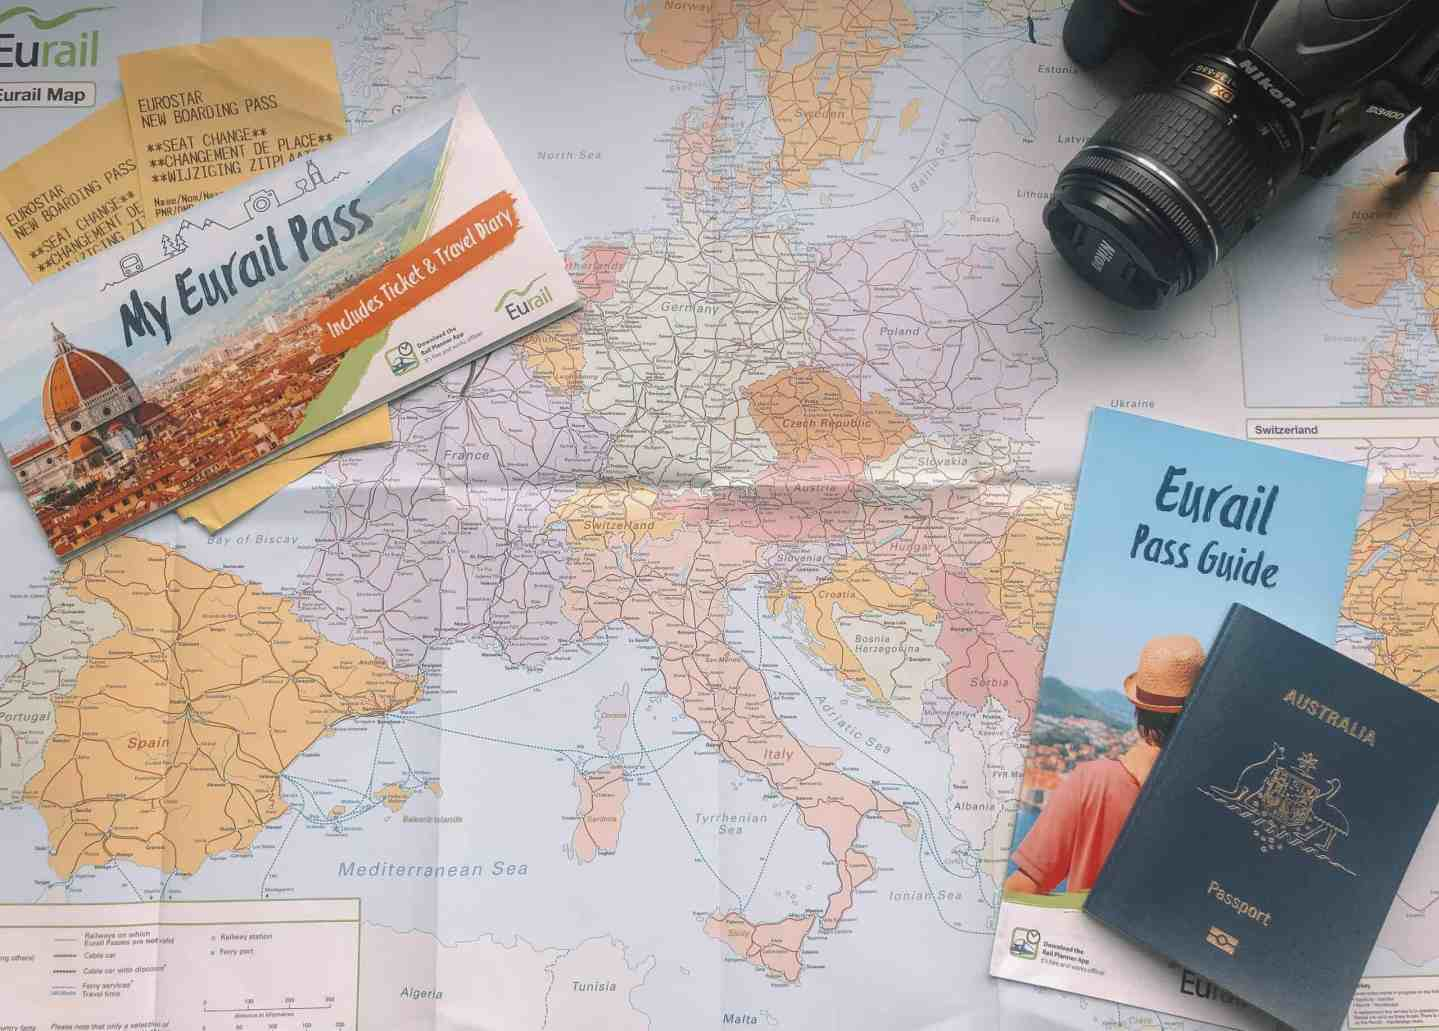 The Eurail Pass Guide, Eurail Pass, Australian Passport and Camera sitting on a Eurail Map